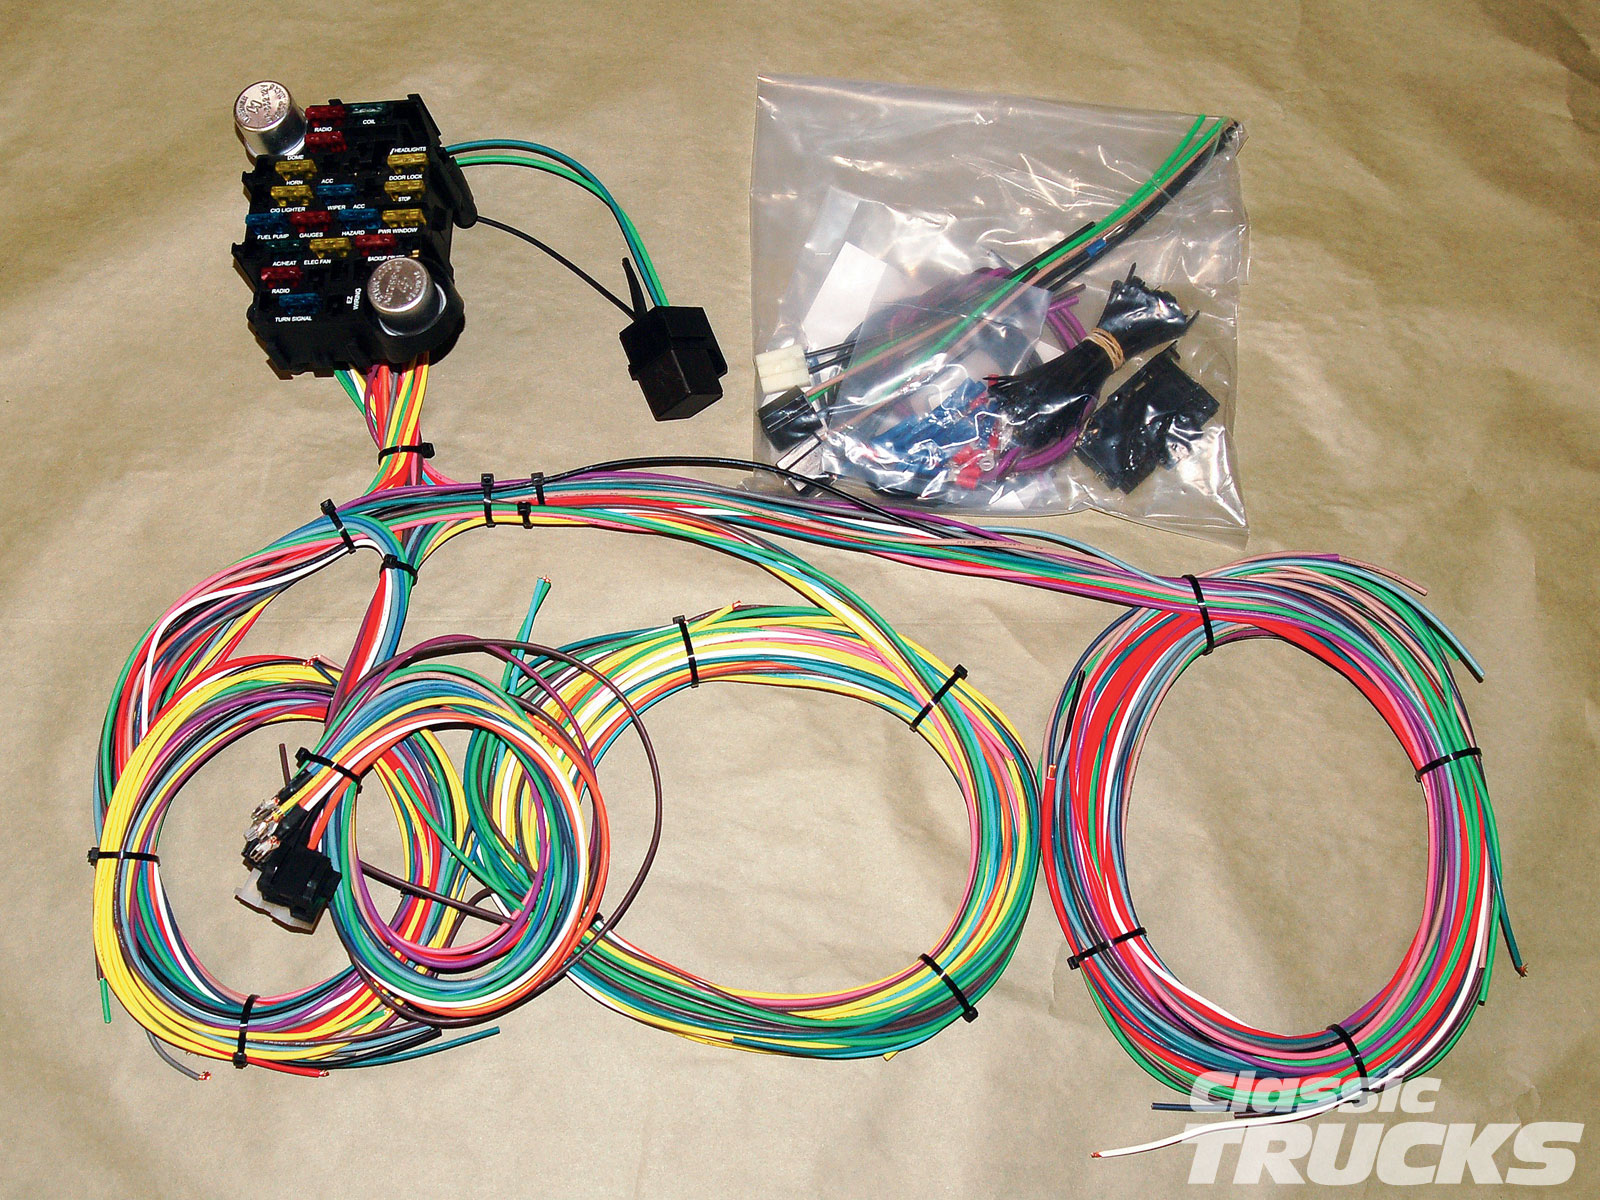 small resolution of aftermarket wiring harness install hot rod networkaftermarket wiring harness install u2013 rewiring a classic truck st hot rod network